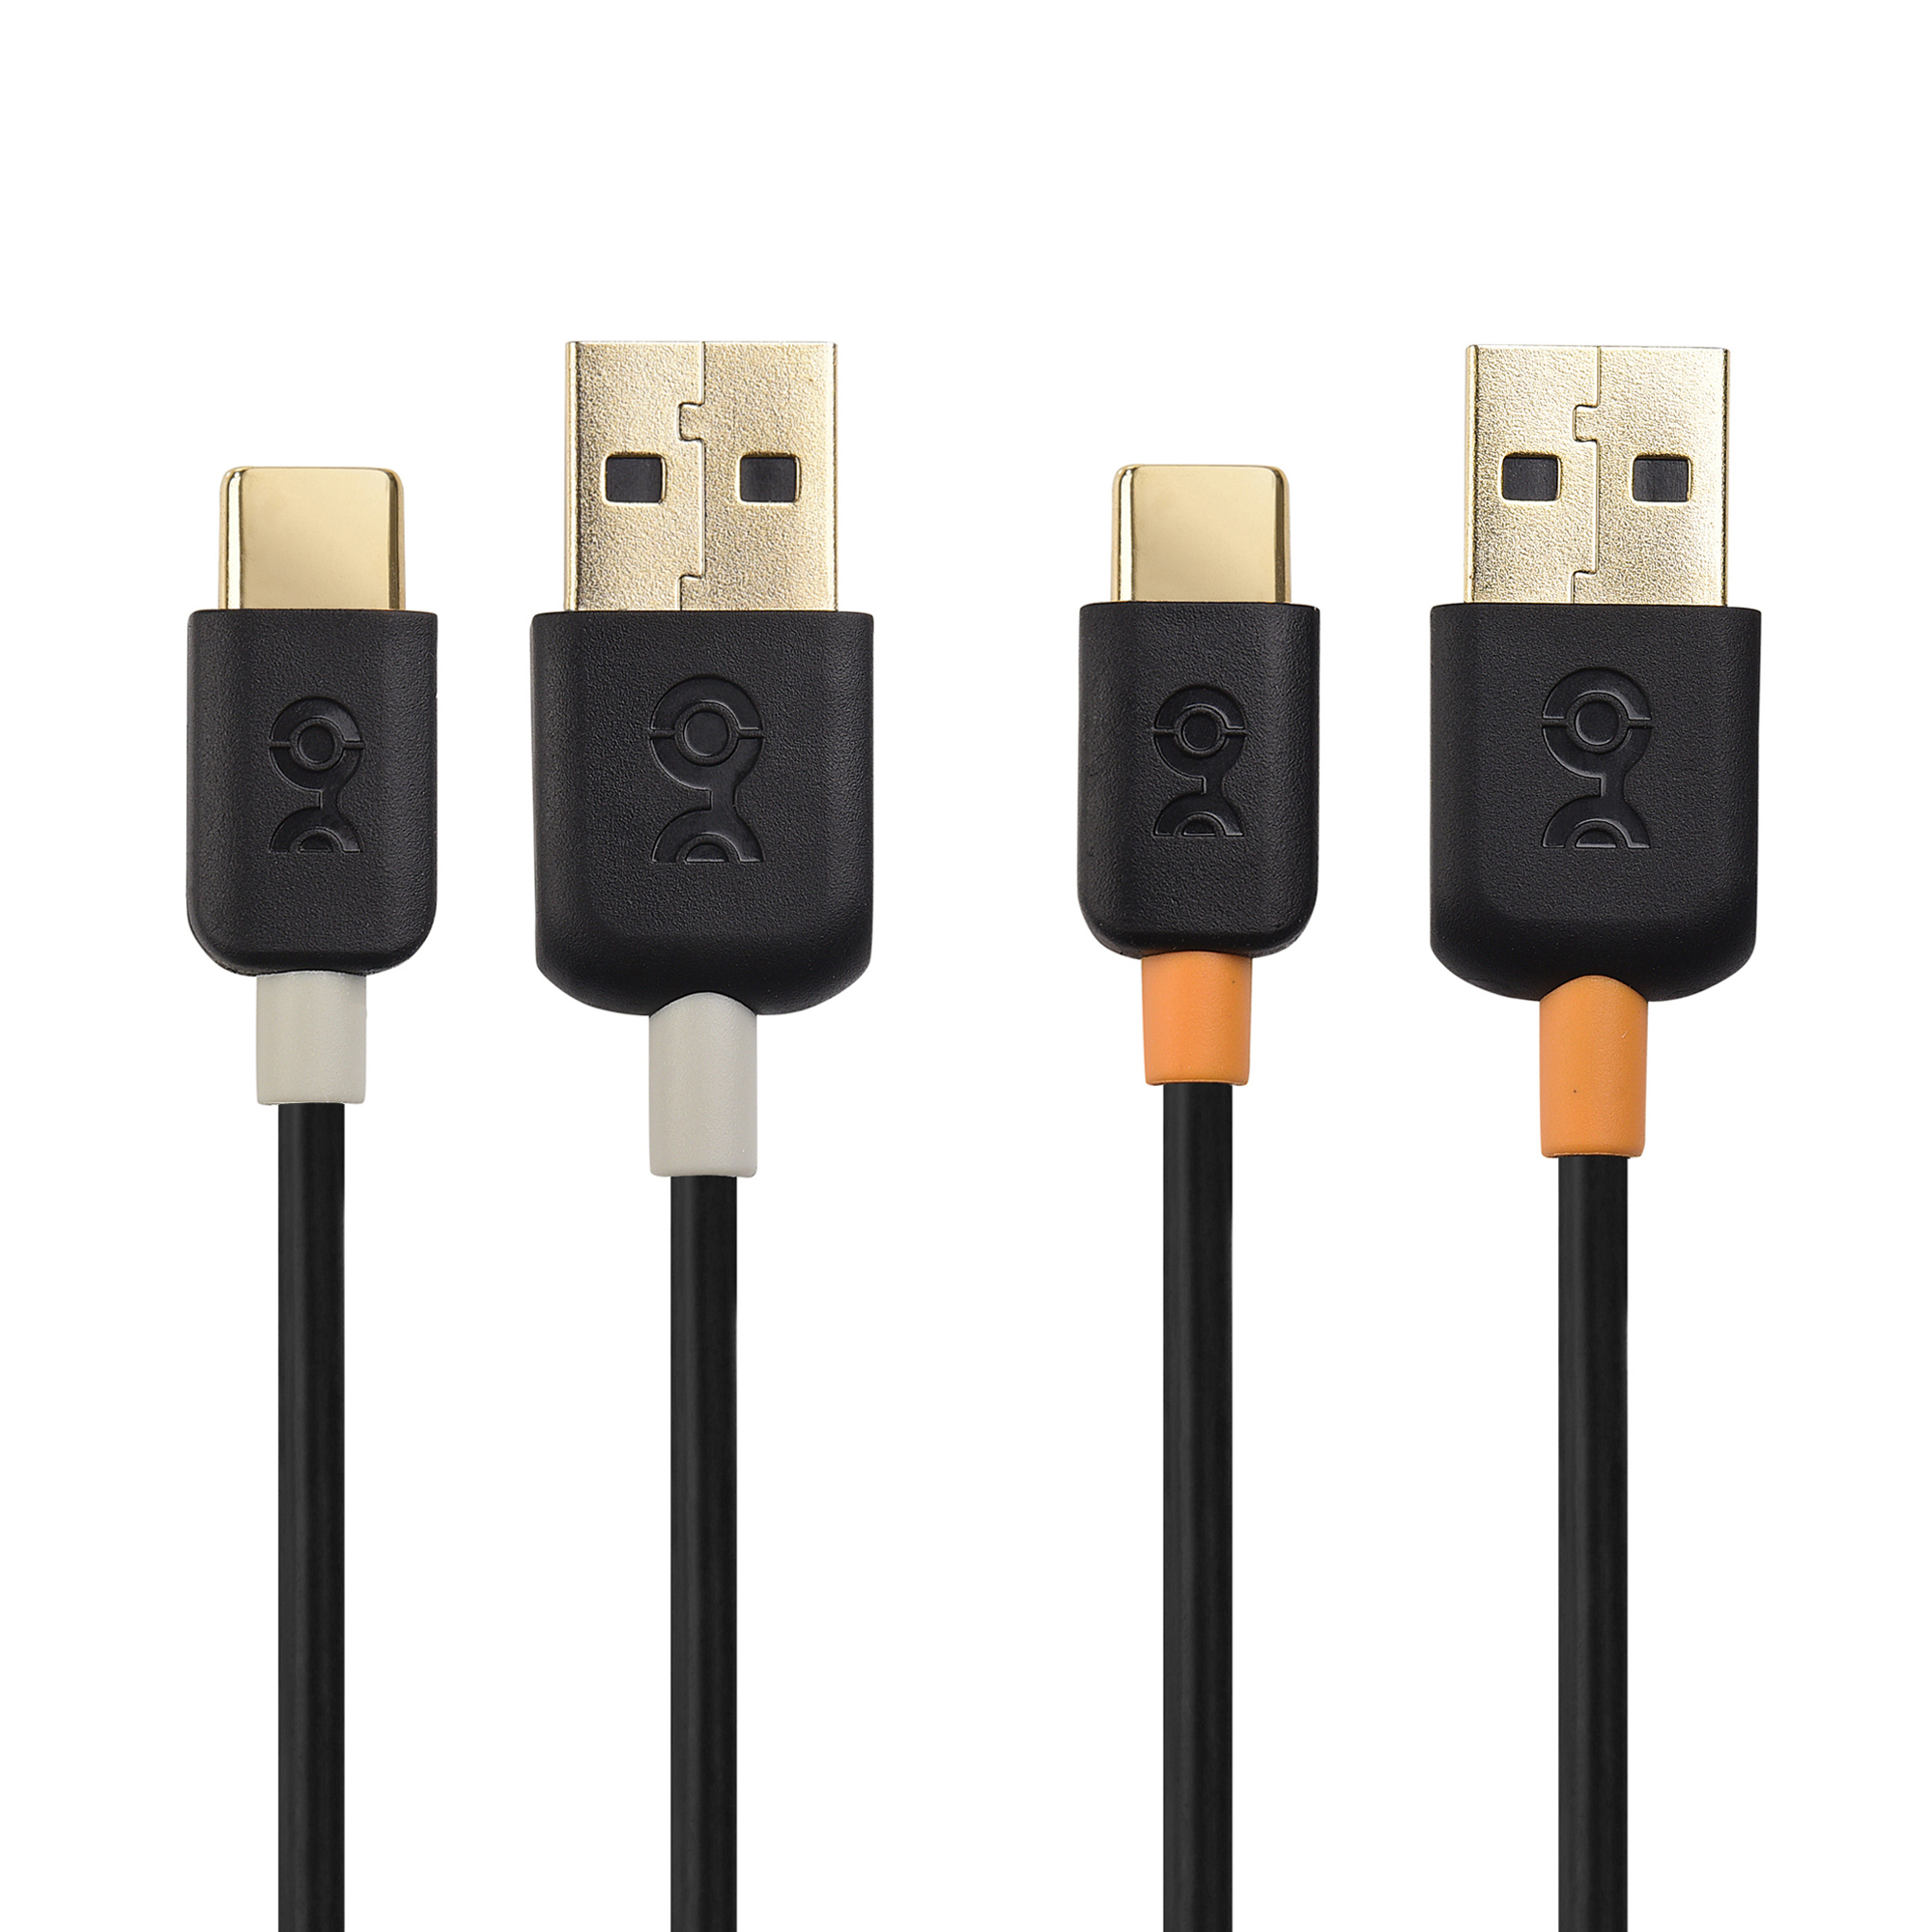 Cable Matters 2-Pack USB-C Cable (USB A to USB C Cable / USB C to USB Cable) in Black 3.3 / 6.6 Feet for Samsung Galaxy S9/S8/Note 8, LG G6/V30, Nintendo Switch and More